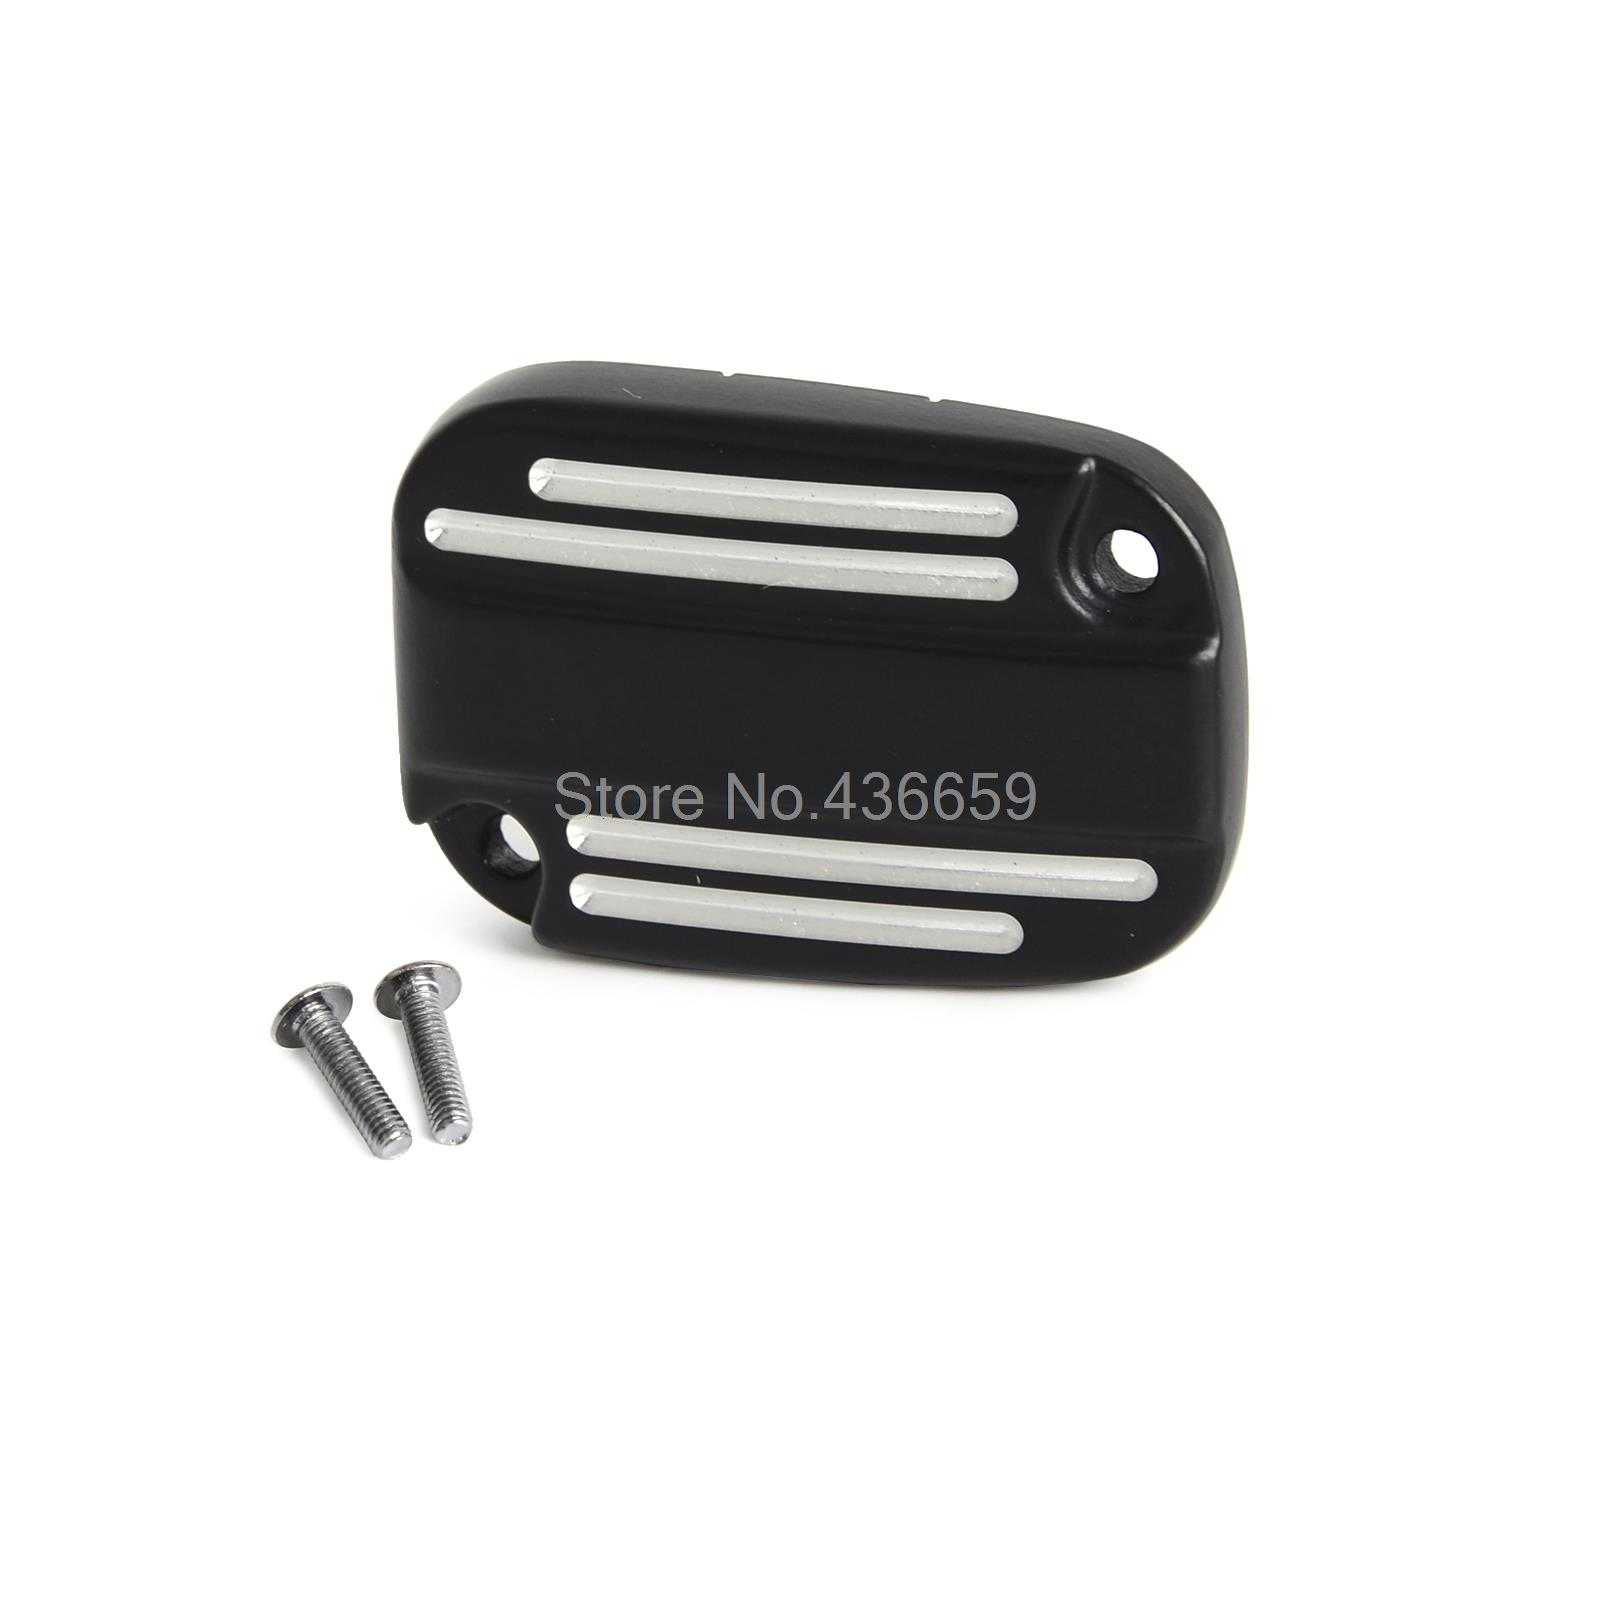 Brake Master Cylinder Cover For Harley  Davidson Touring V-Rod  Trike  Street  Glide<br><br>Aliexpress